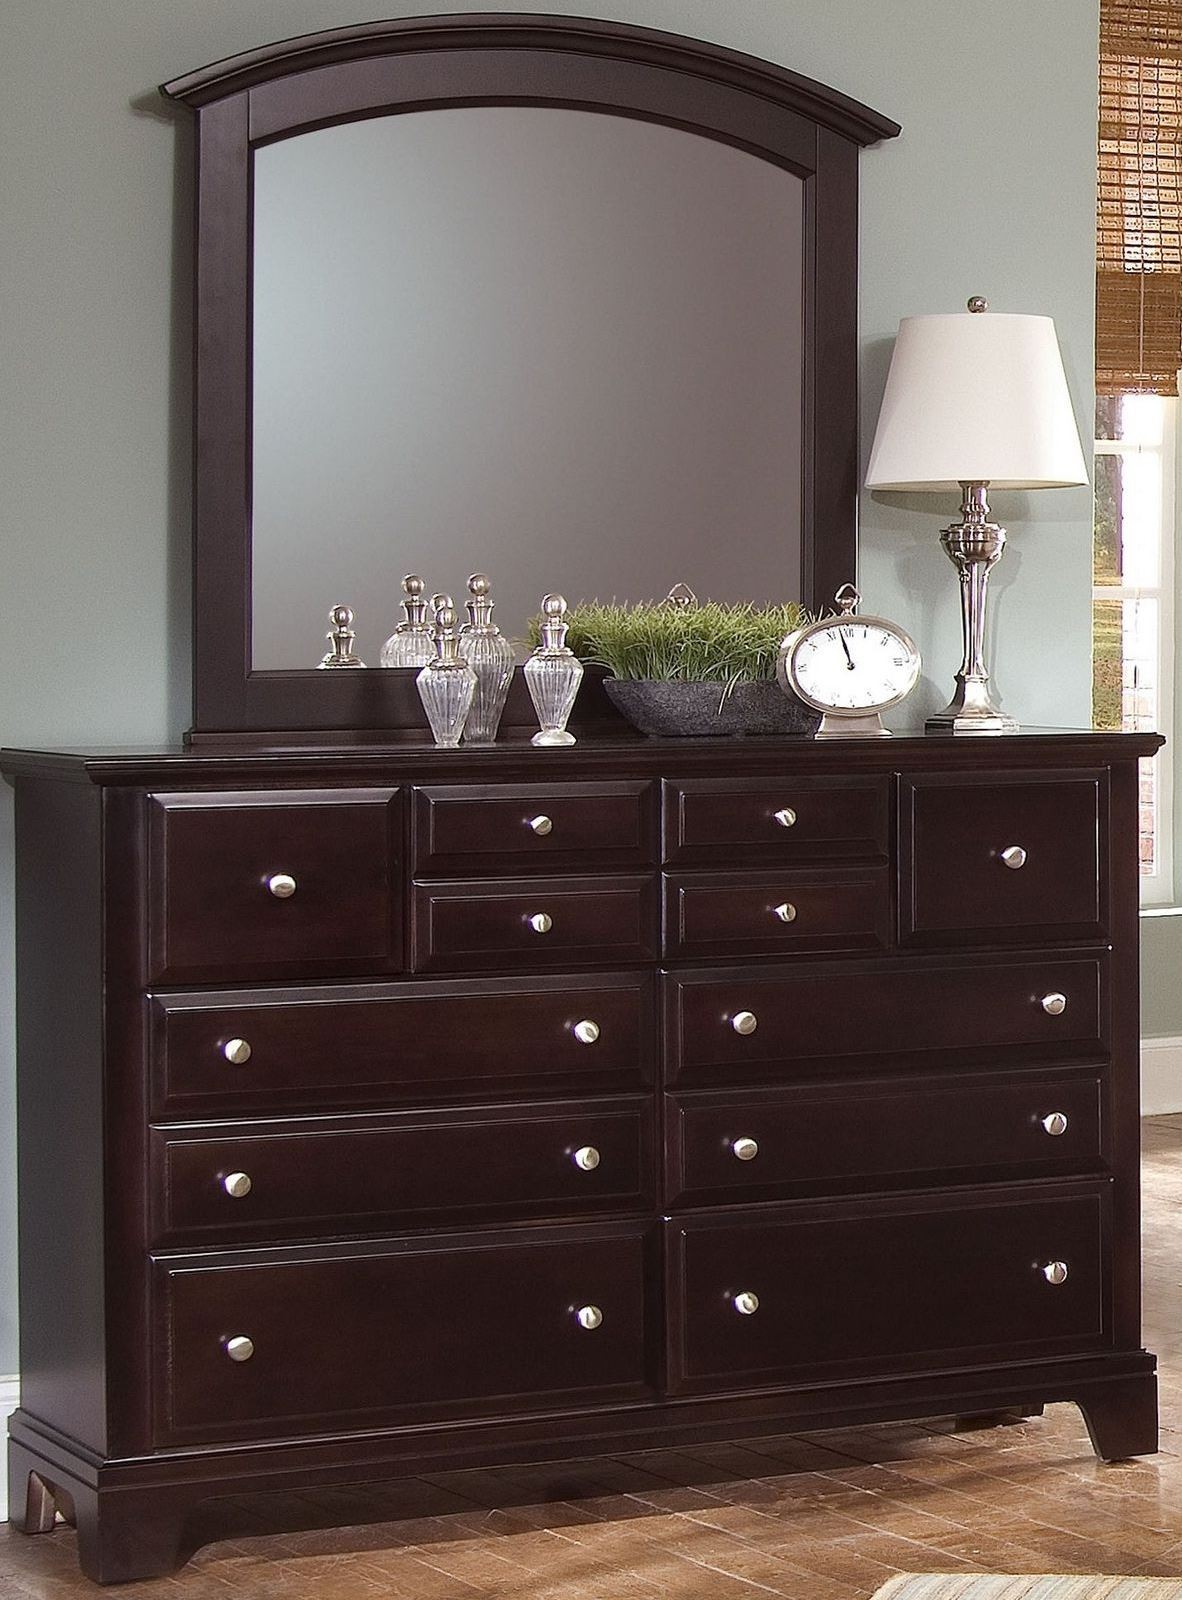 Hamilton Franklin Merlot Panel Bedroom Set From Virginia